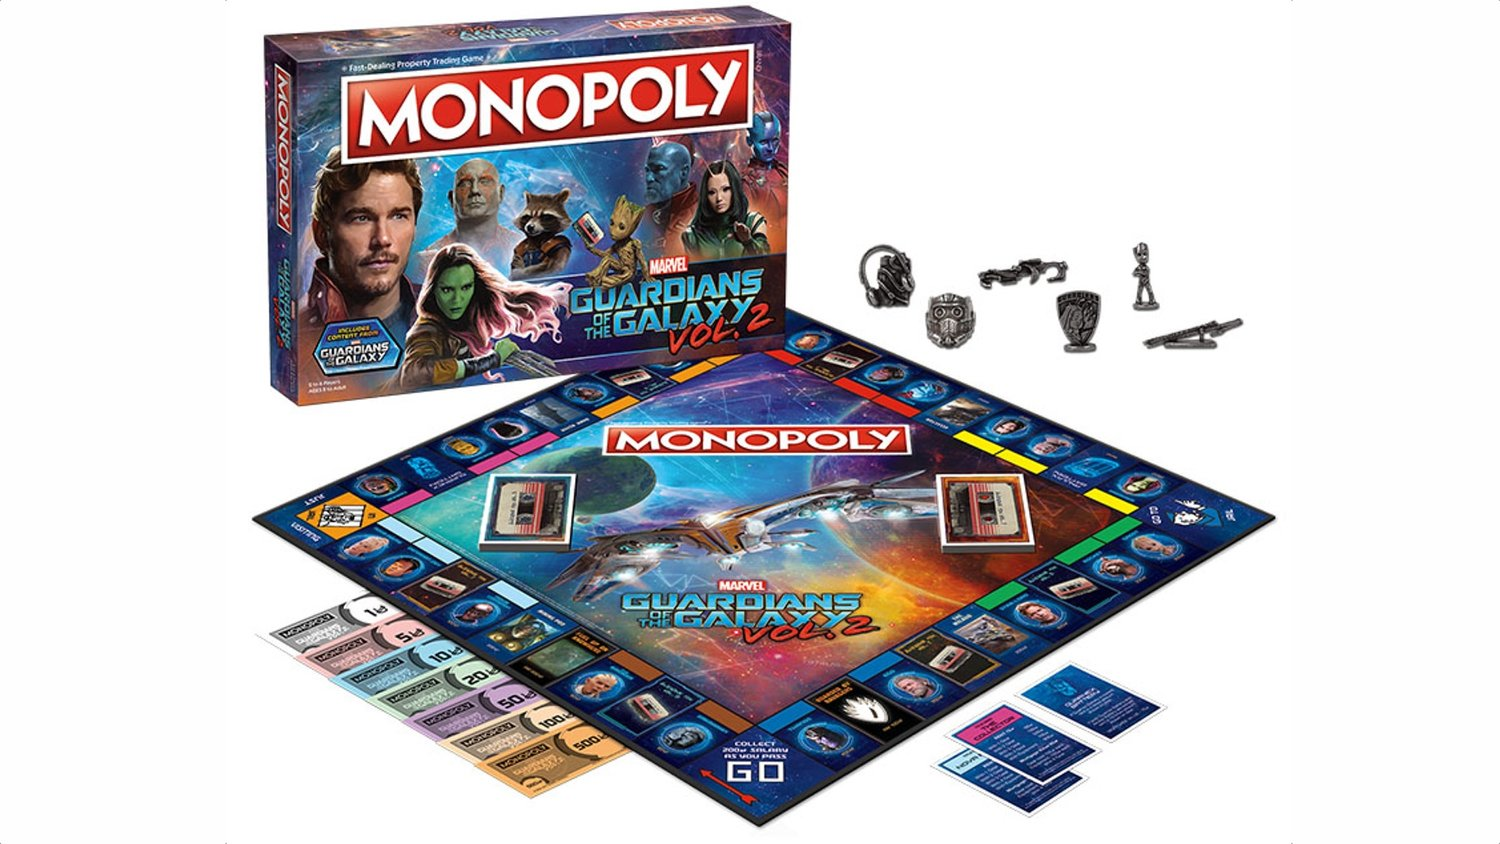 GUARDIANS OF THE GALAXY VOL. 2 Gets Its Own Monopoly Game